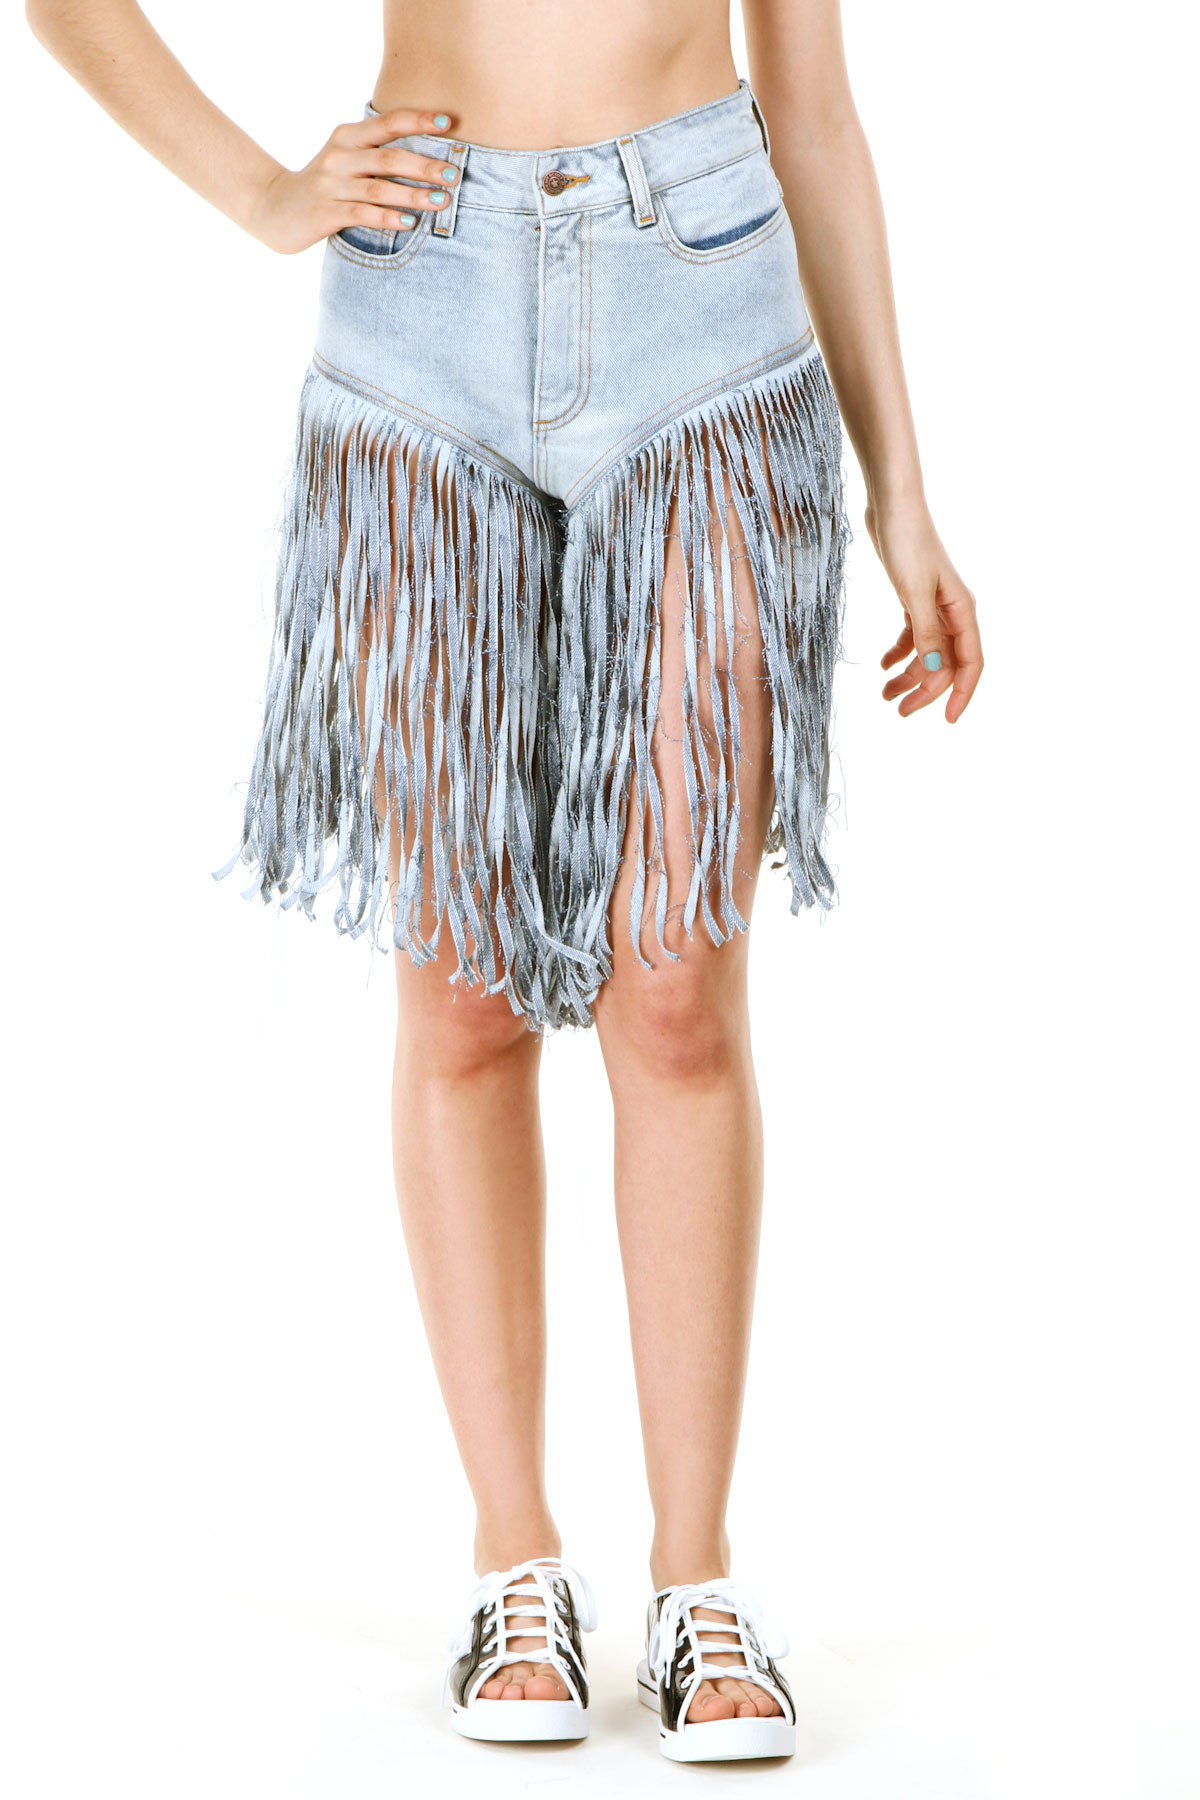 JEREMY SCOTT FRINGE JEAN SHORTS - WOMEN - BOTTOMS - JEREMY SCOTT - OPENING CEREMONY